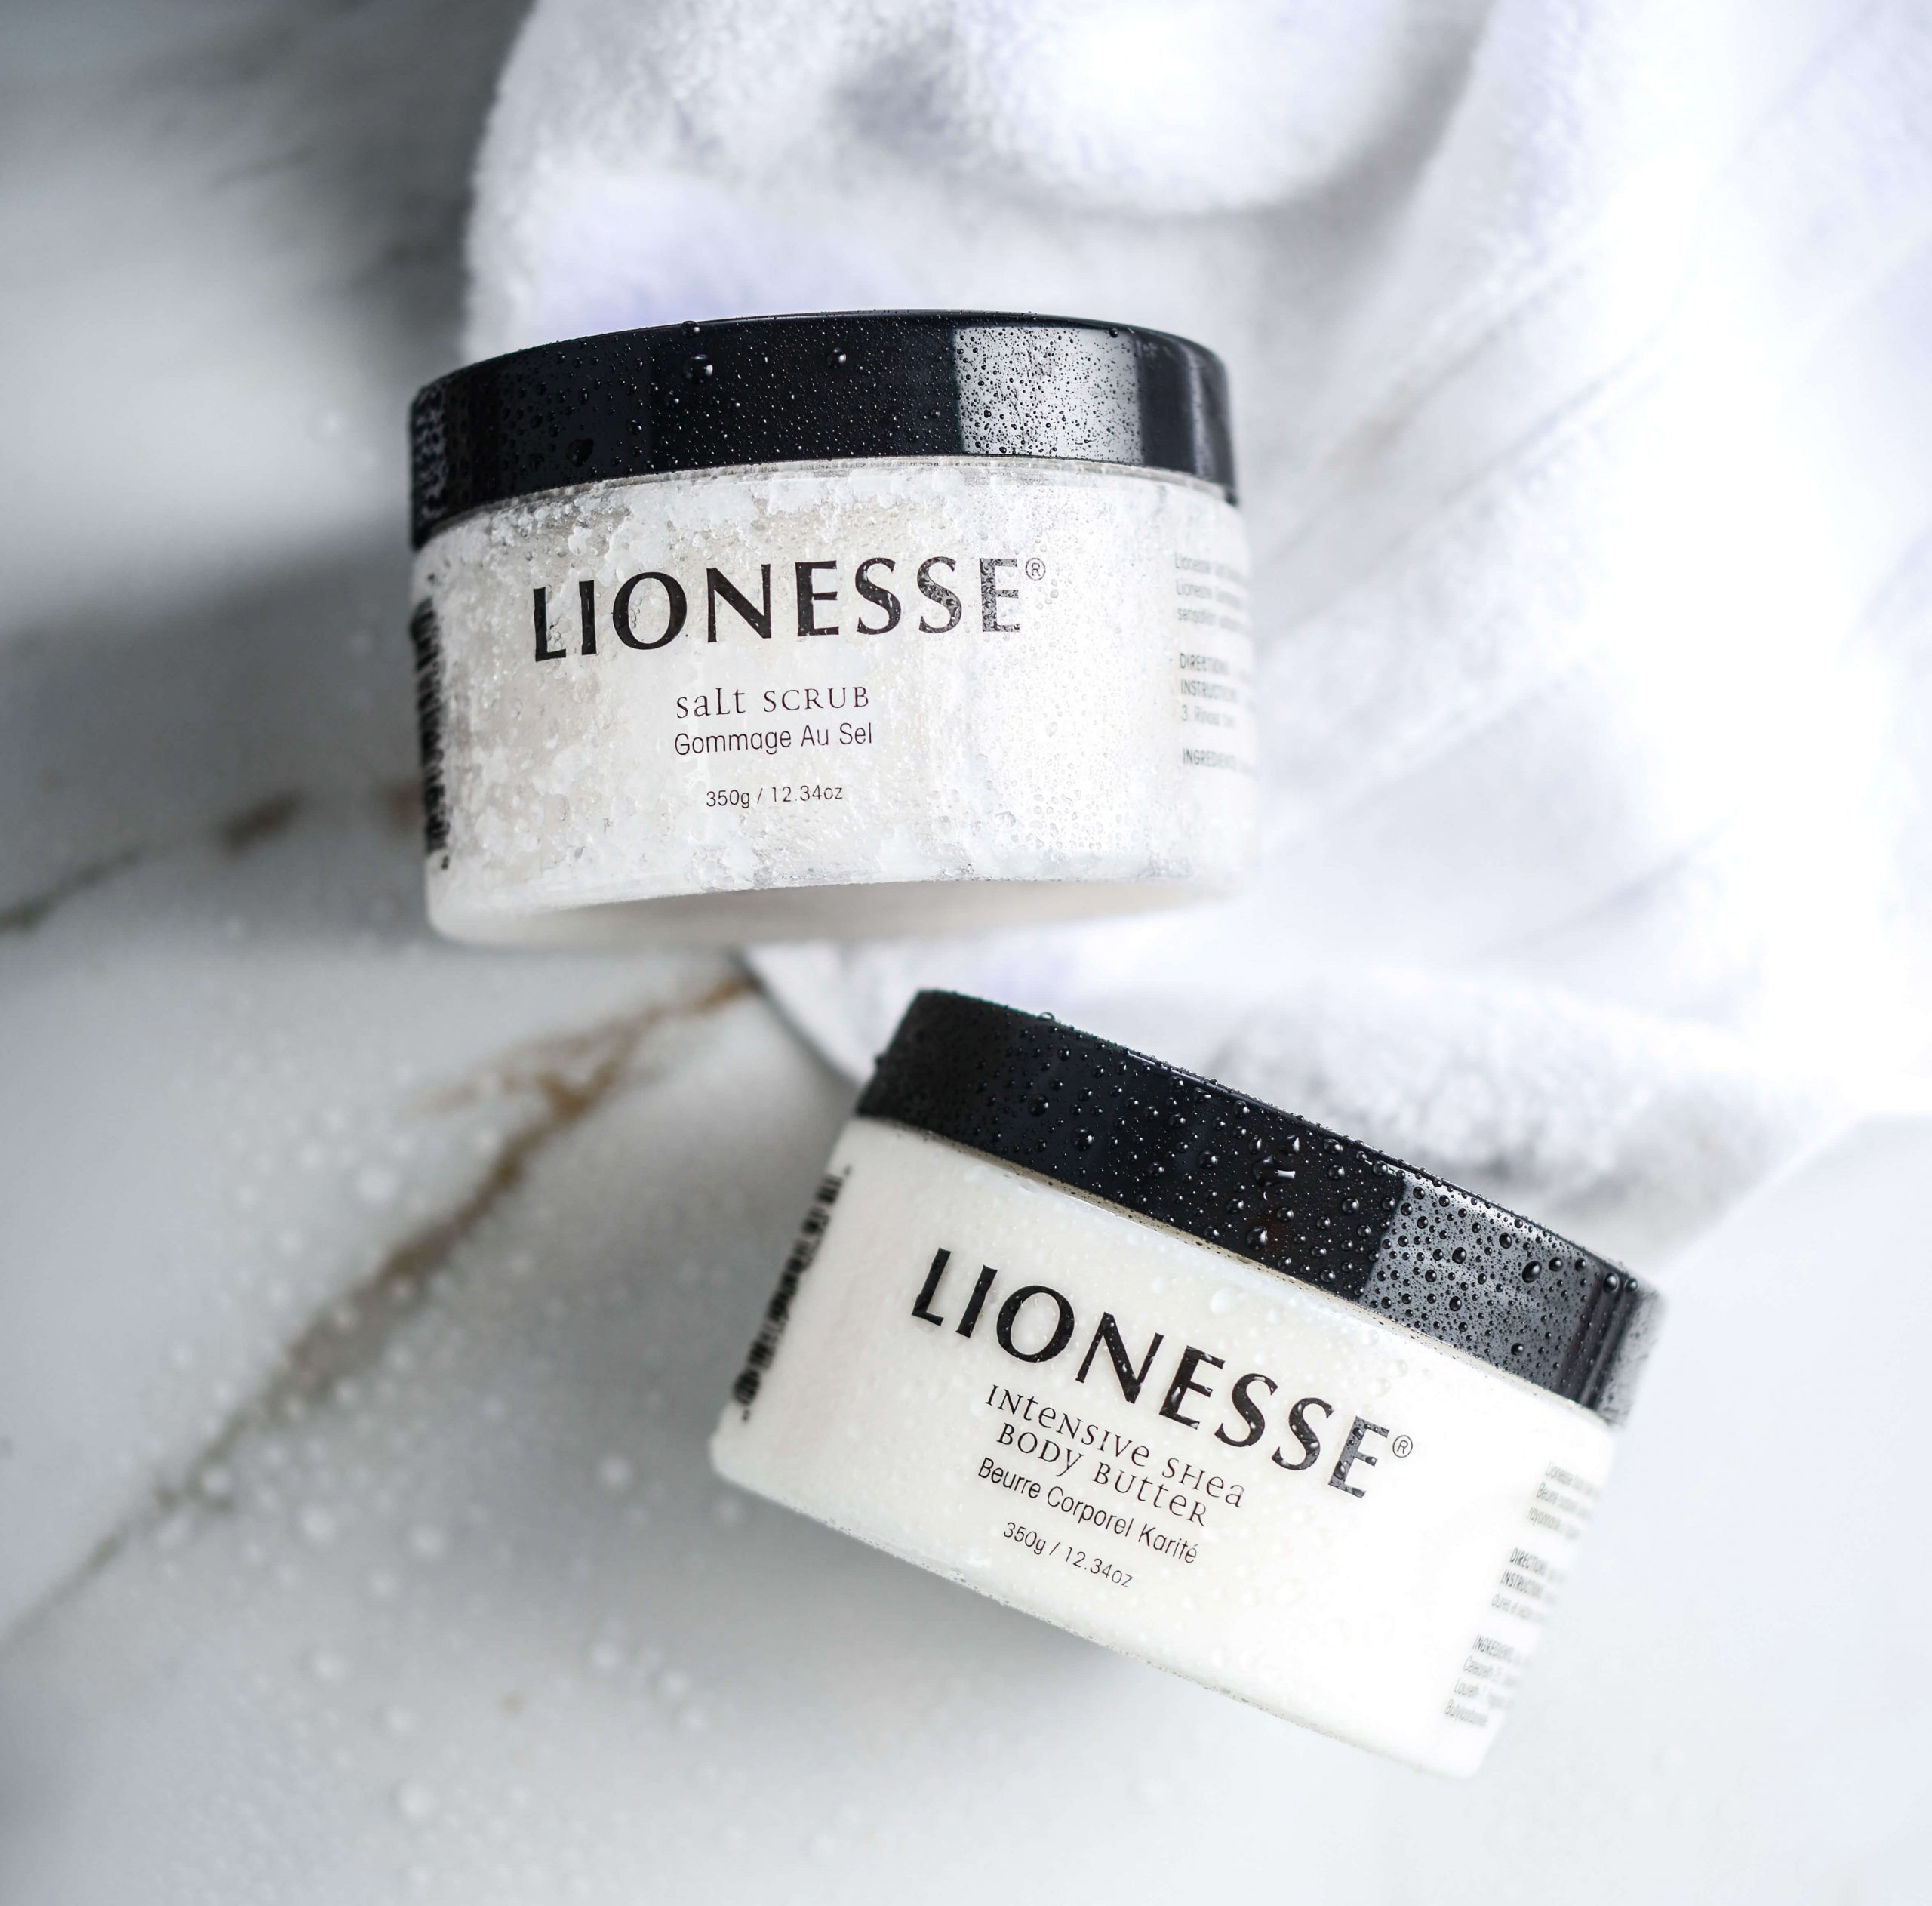 Lionesse skin products